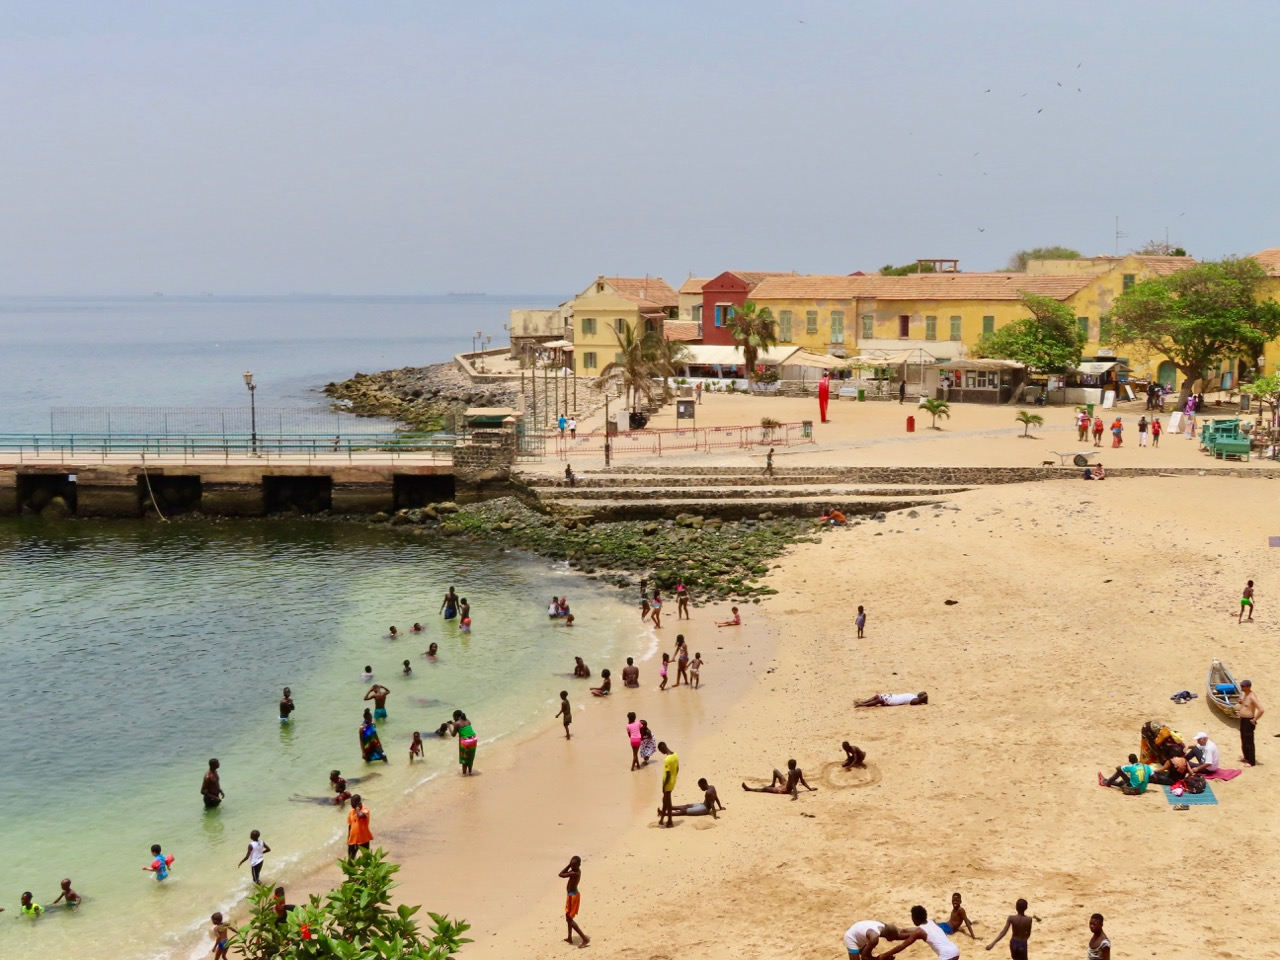 10 Things You Need To Know Before Going To Senegal